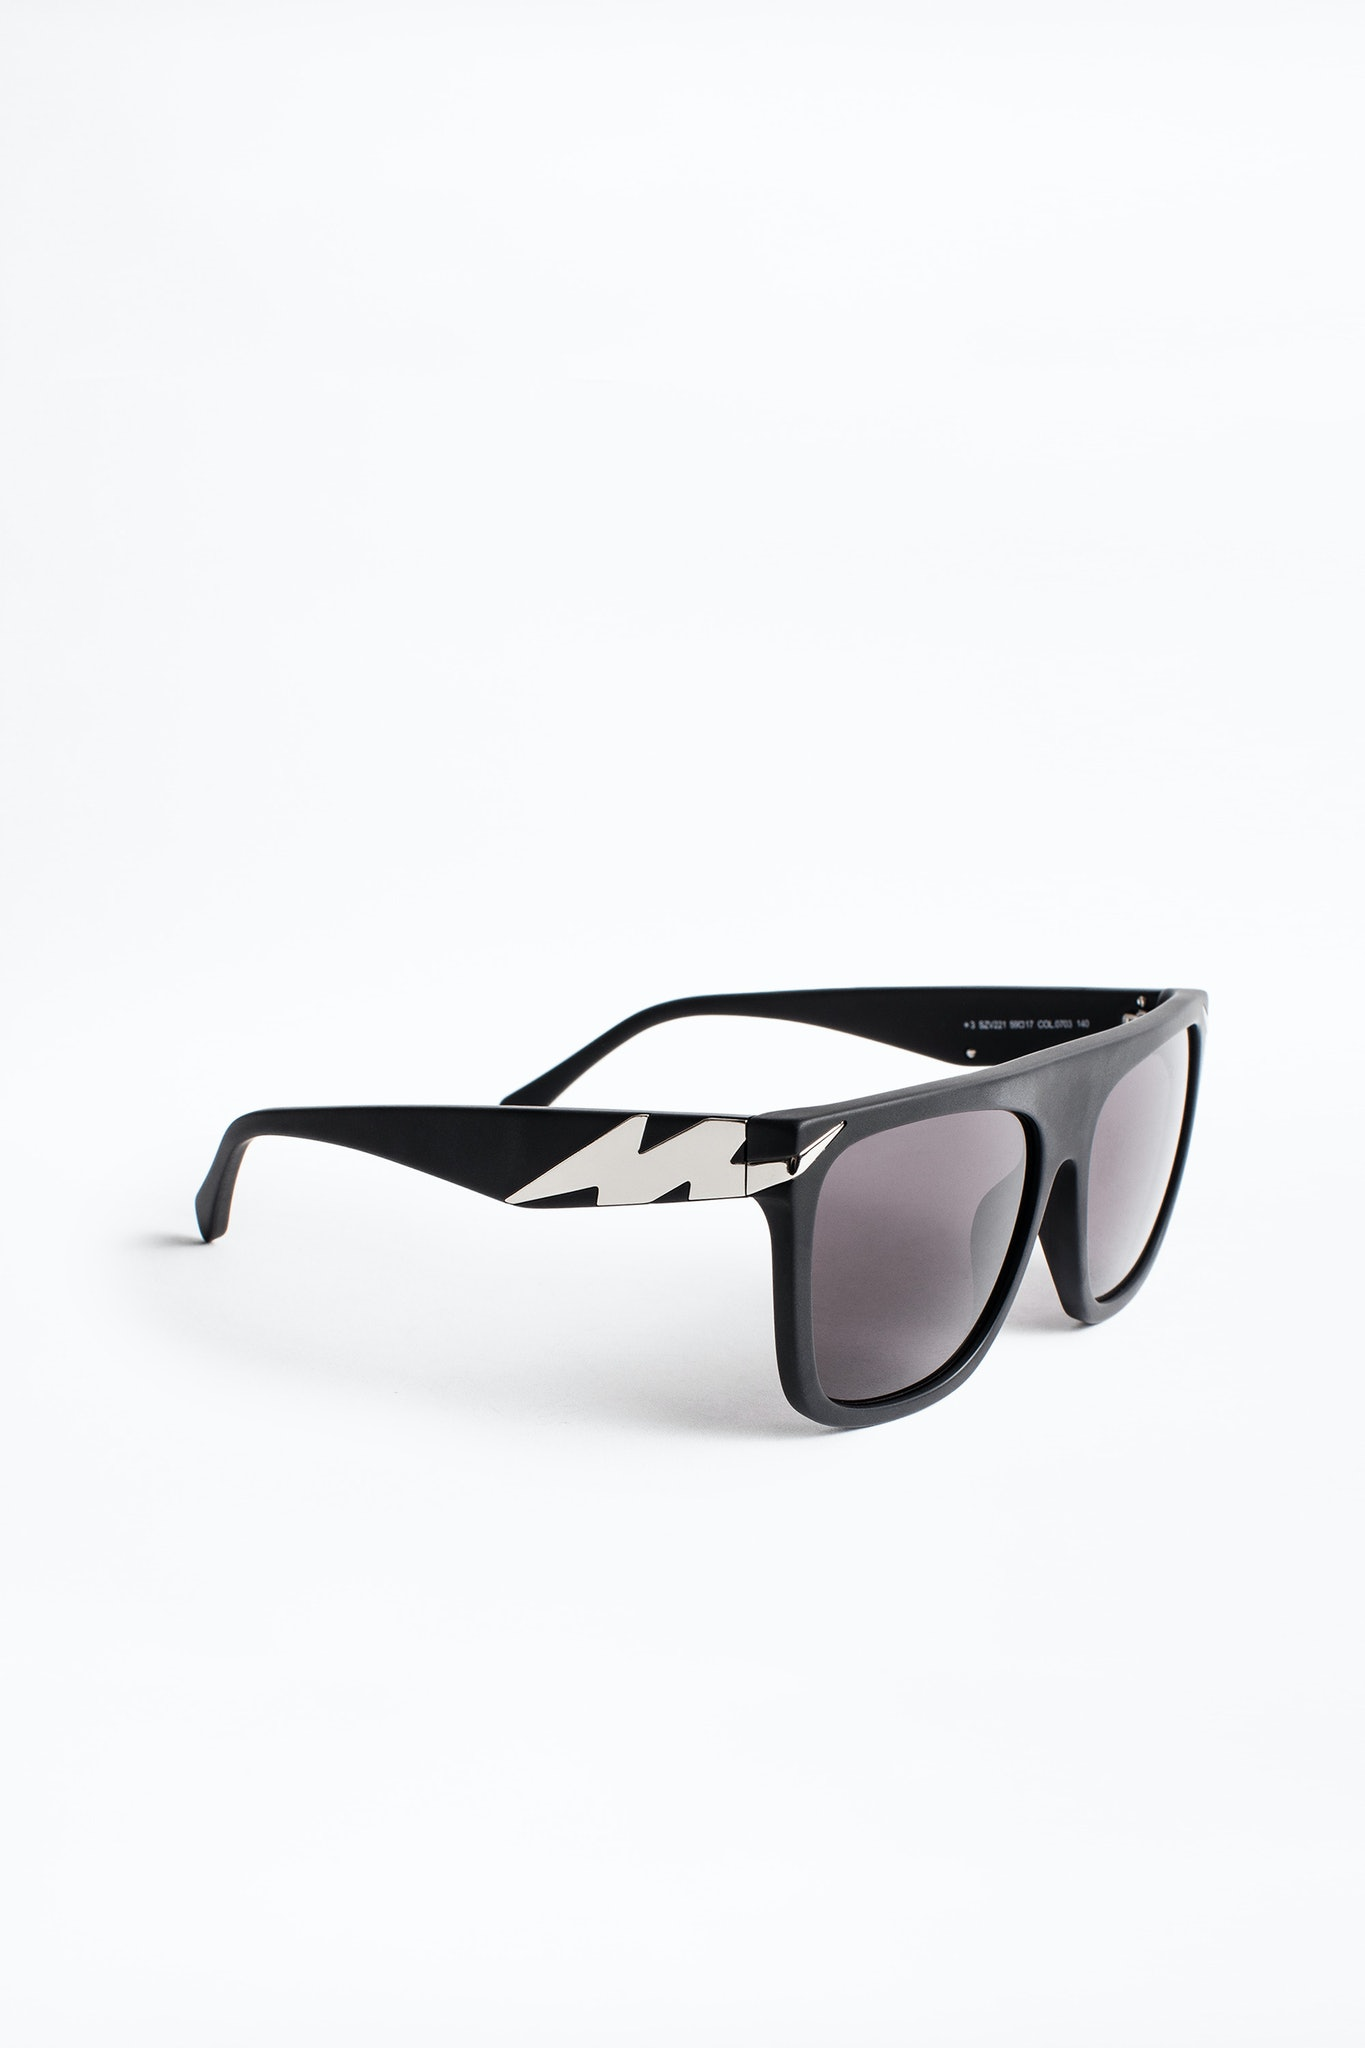 SZV221 Sunglasses